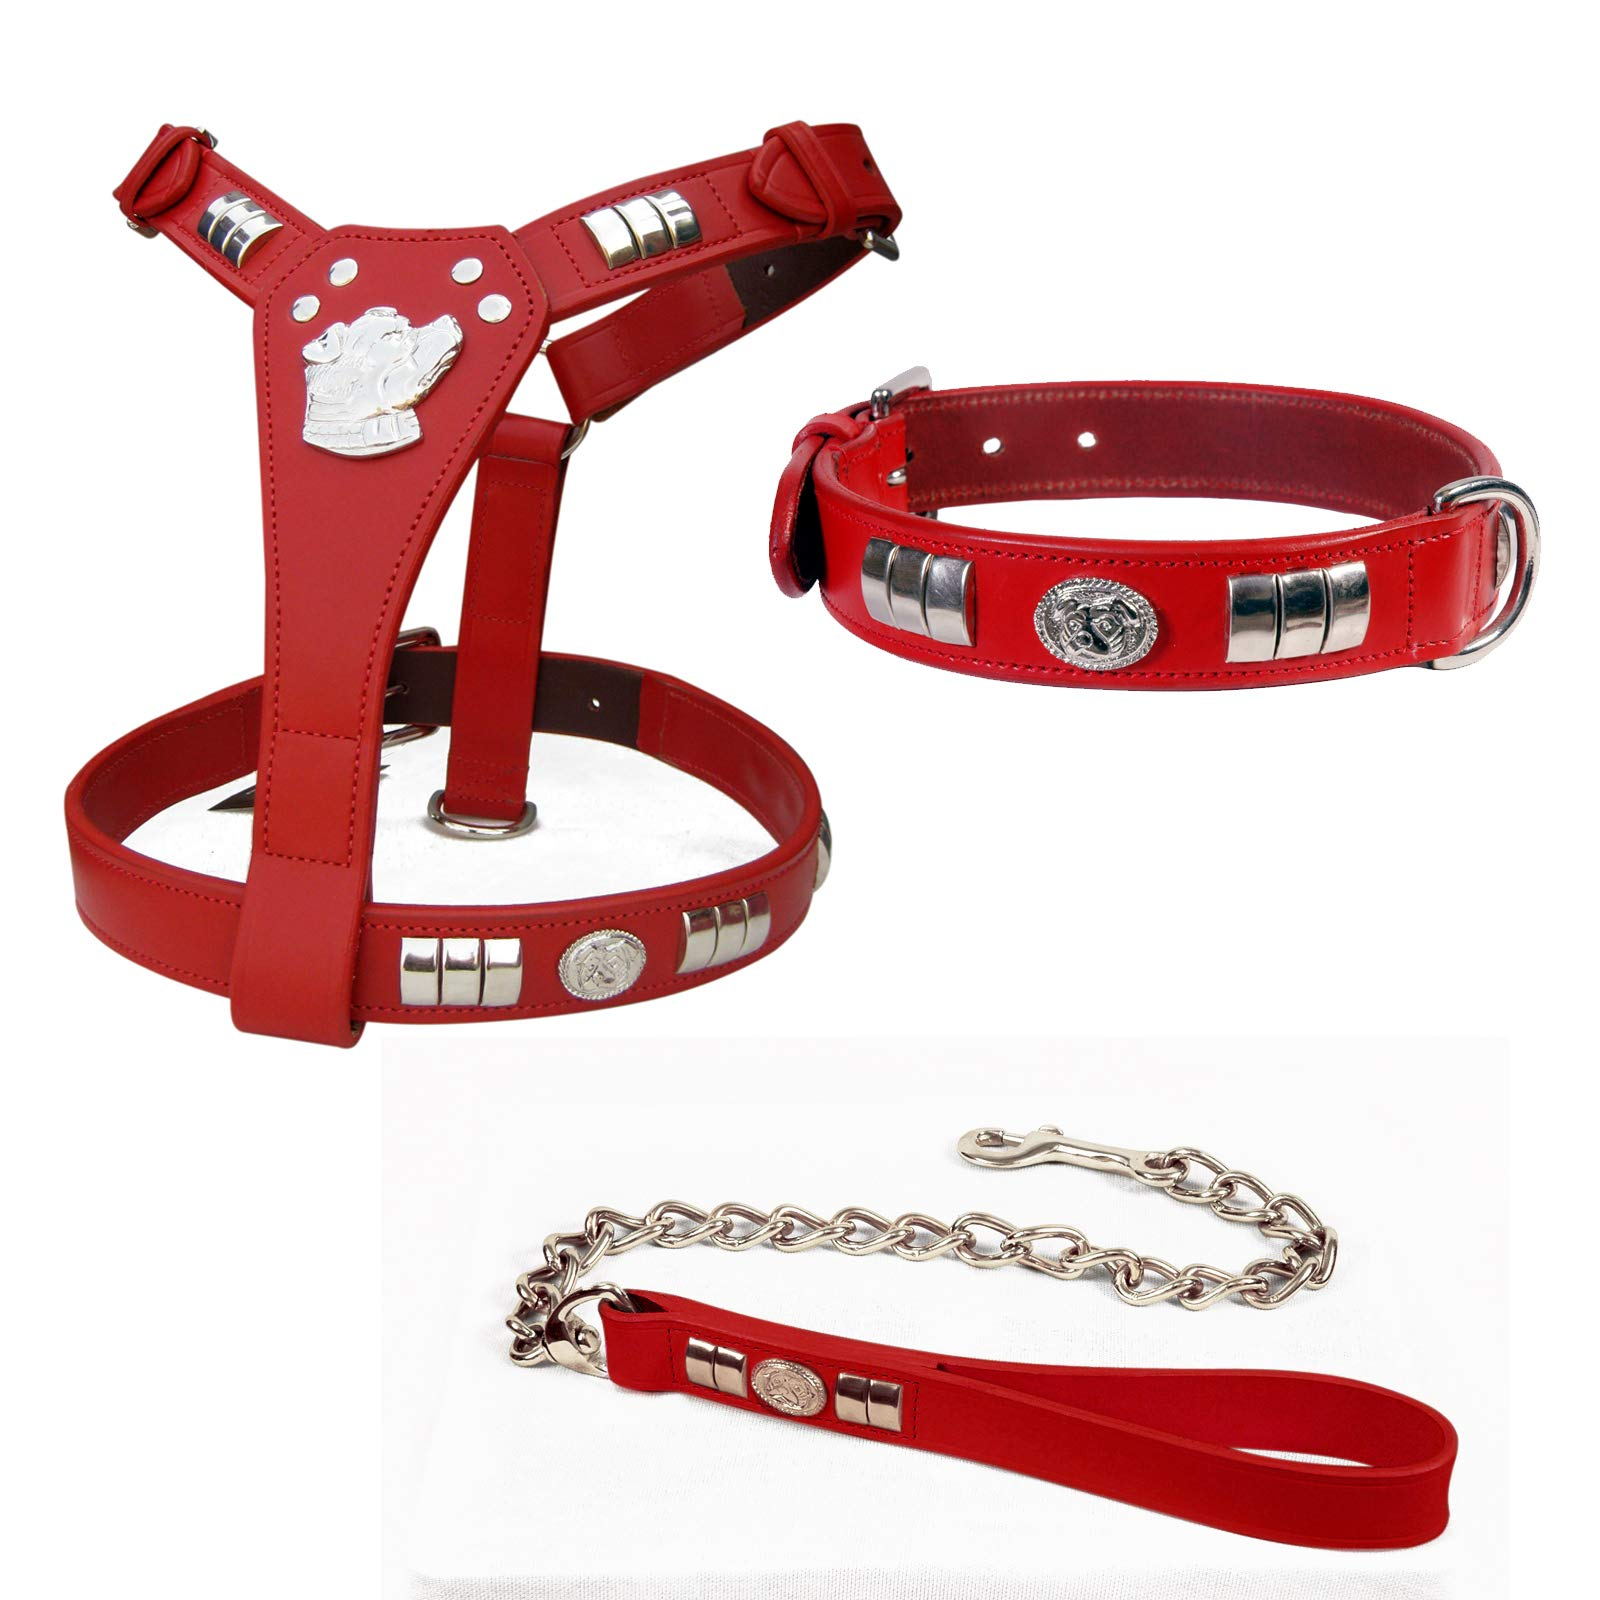 Aces Equine RED COLOR STAFFORDSHIRE BULL TERRIER DOG HARNESS, COLLAR AND CHAIN LEAD SET STAFFY DOG FACE SILVER (CHROME)